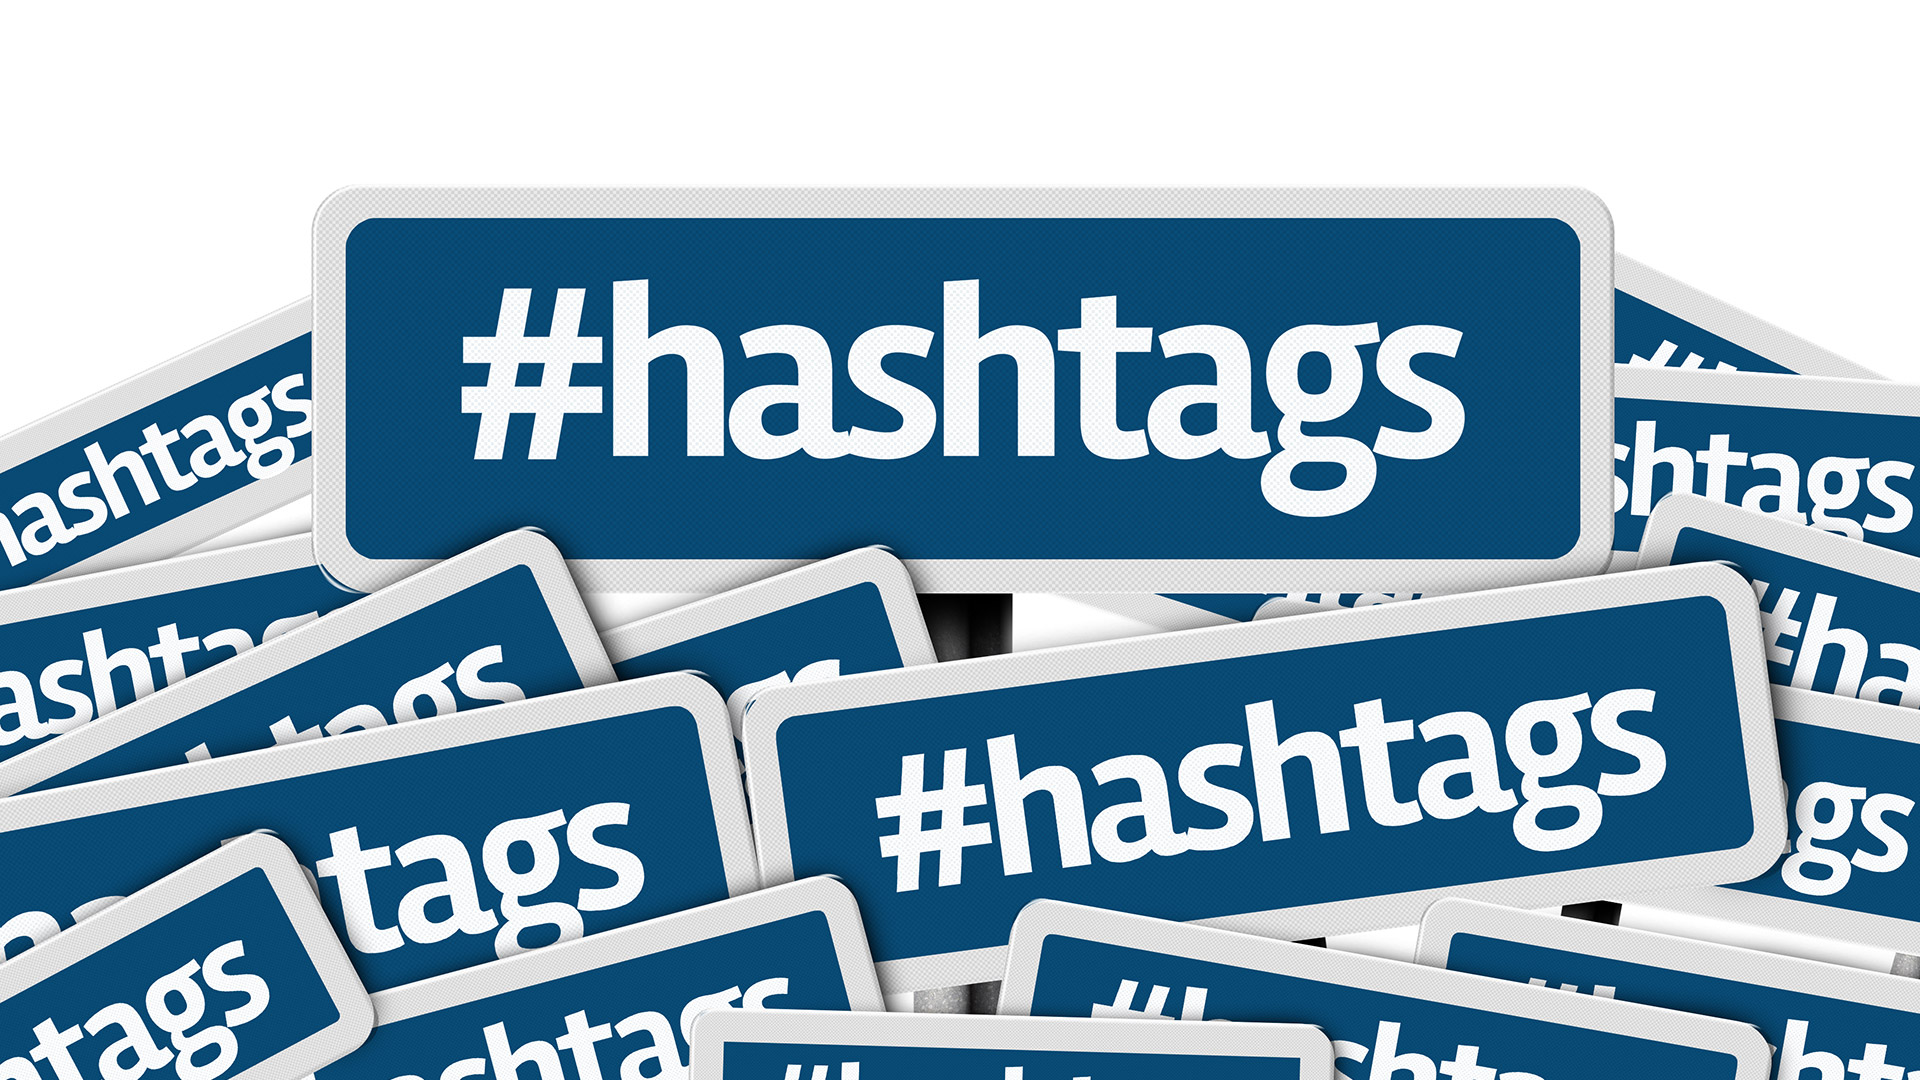 hashtags-signs